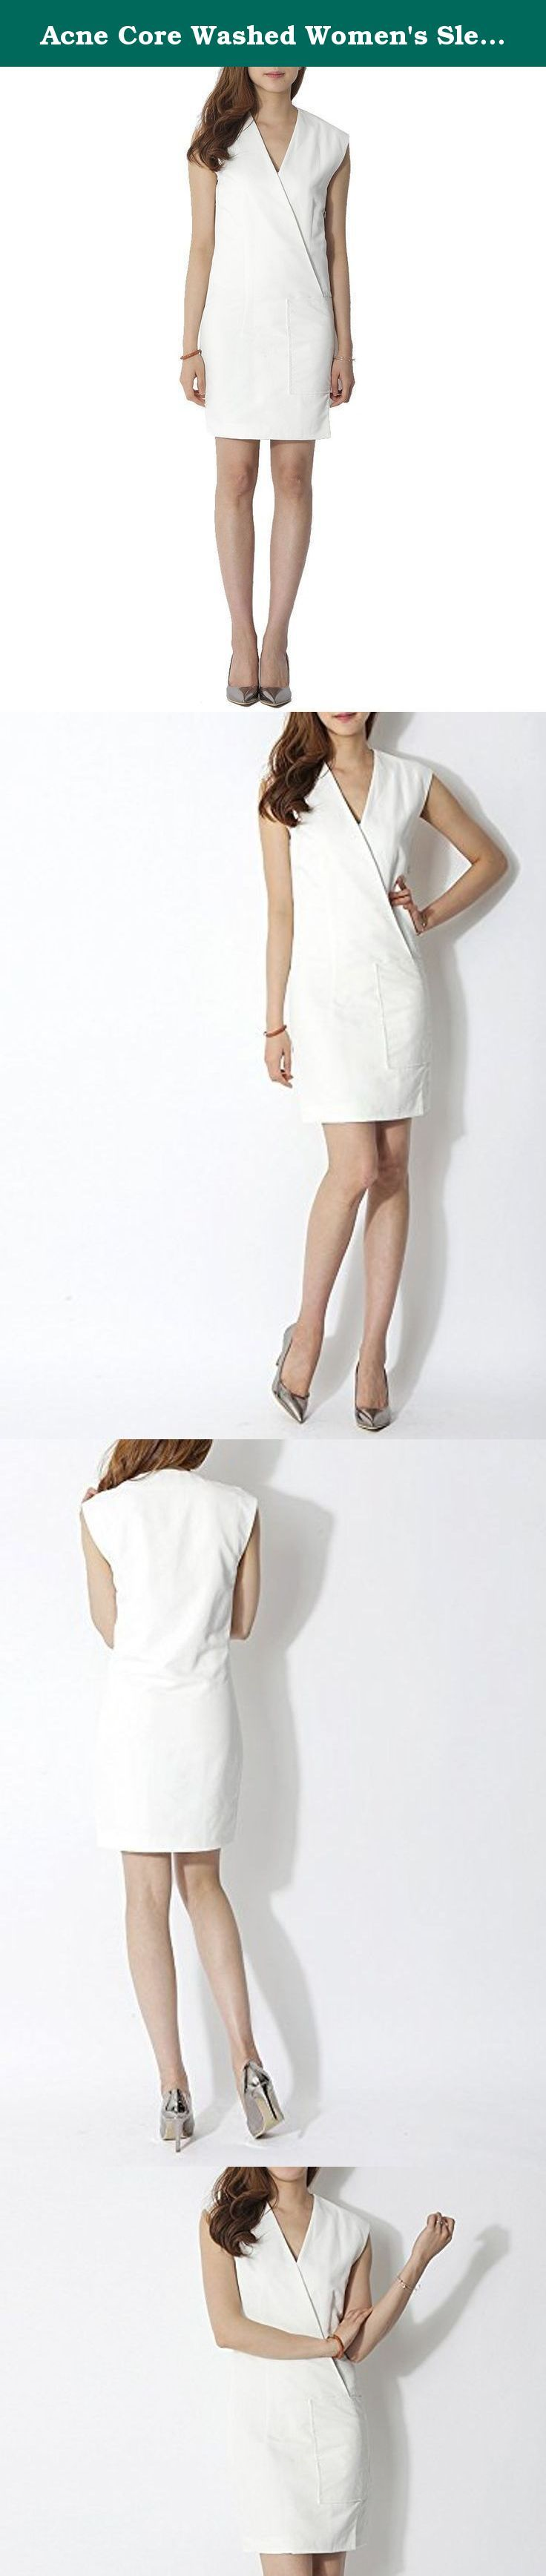 Acne Core Washed Women's Sleeveless Wrap Dress 34 White. [Size Info (inches)] Shoulder Width : 32) 16.5 / 34) 16.9 Bust : 32) 34.6 / 34) 35.4 Total Length : 32) 34.3 / 34) 35.0 Model is 5 ft 6 inches (170 cm) tall and wearing size 32 [Item Features] Exude that pristine goddess vibe when you wear this chic white wrap dress. Designed with v-neckline, sleeveless, zip-up side fastening, one large patch pocket and a sultry thigh length hem. Keep it modern and flawless with your metallic…